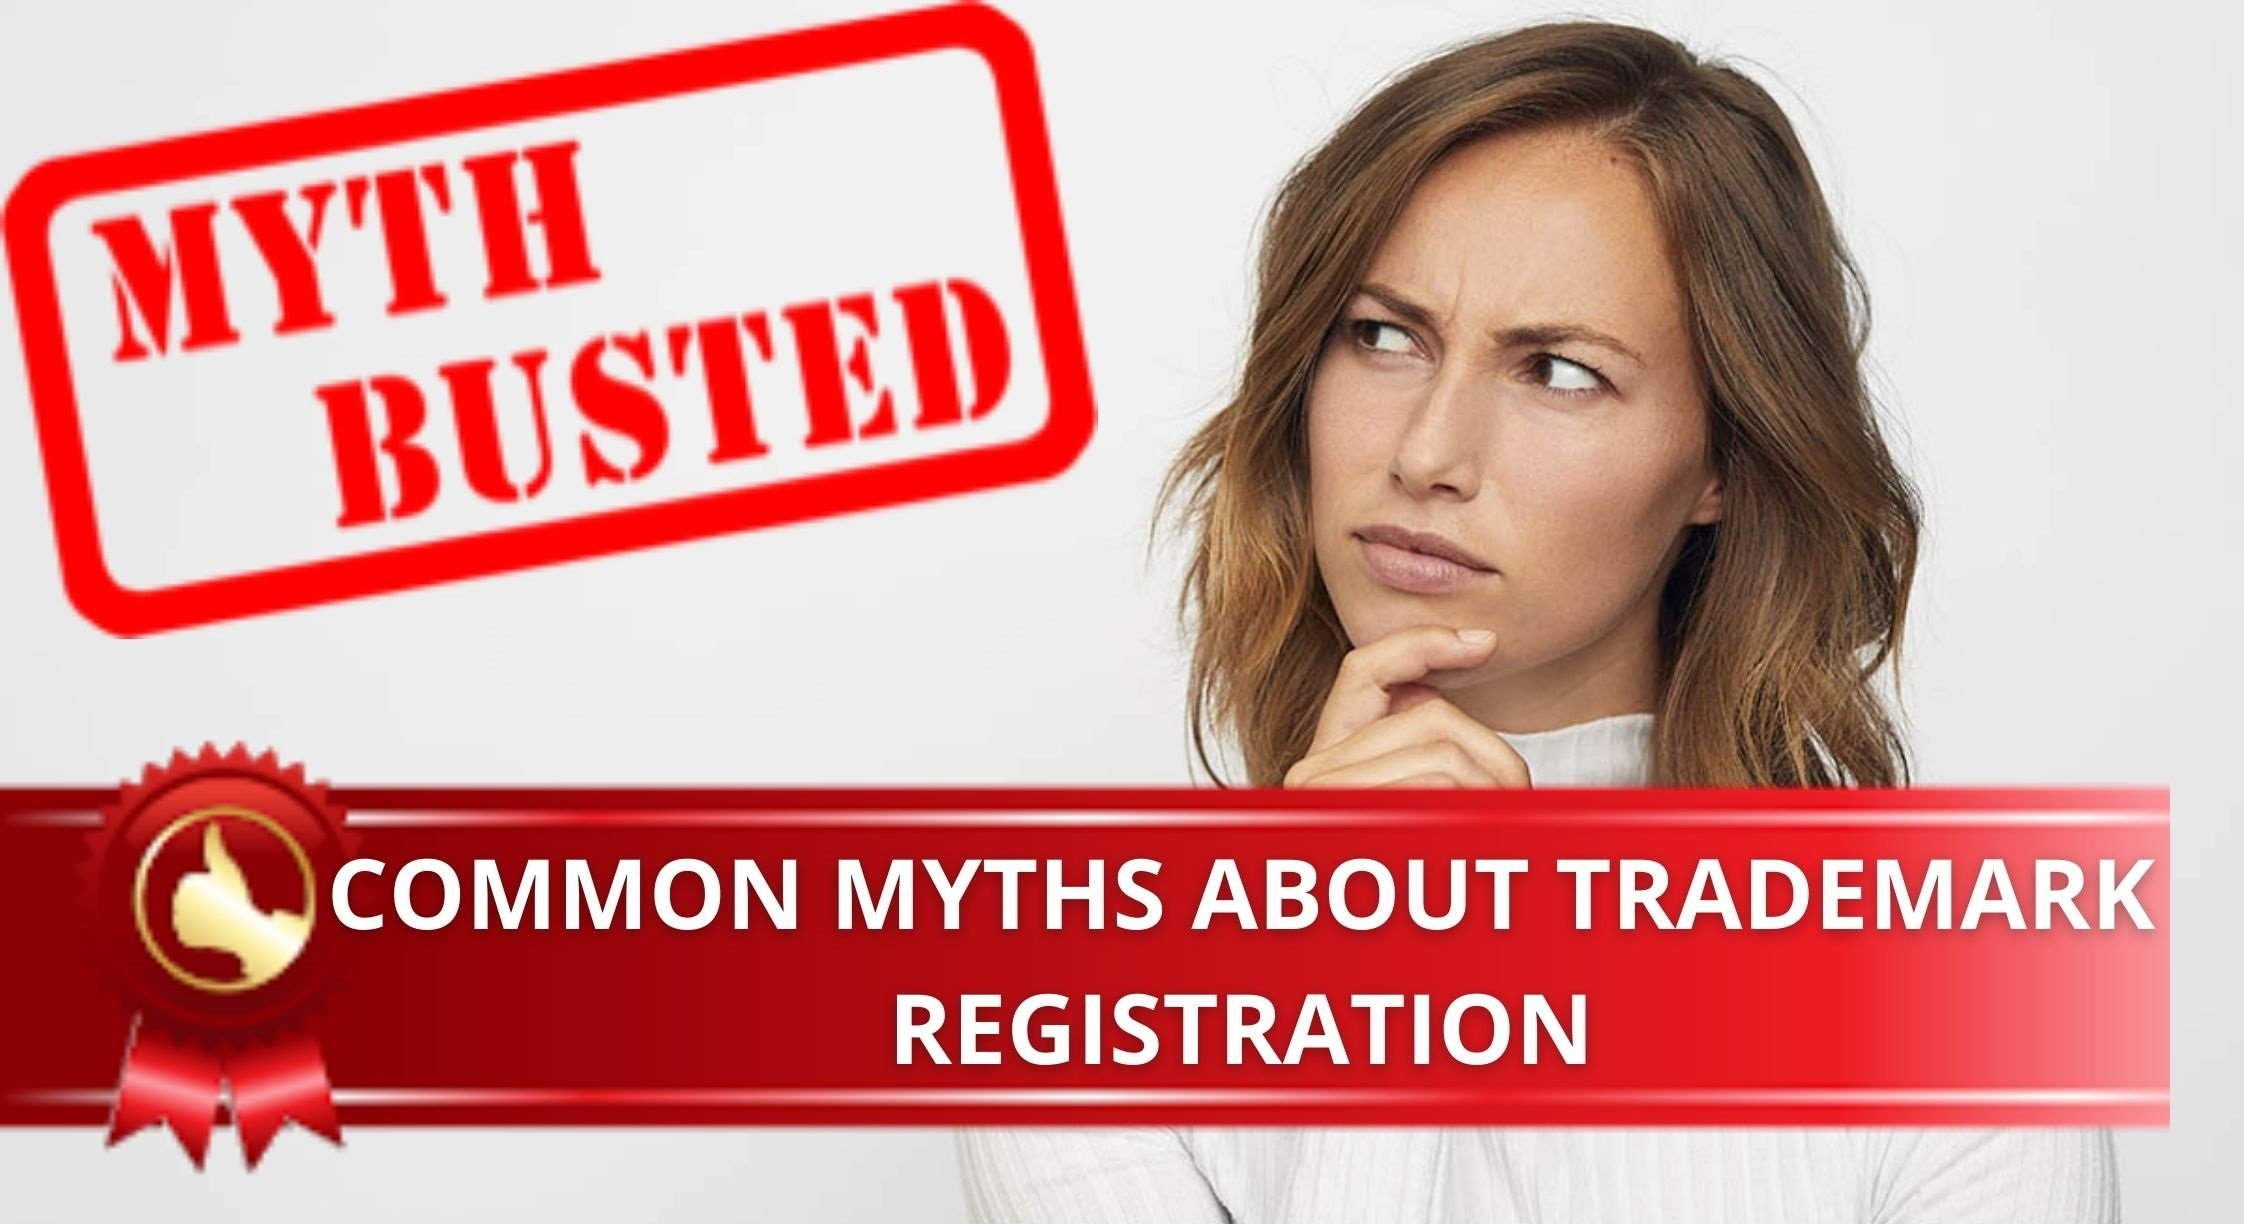 COMMON MYTHS ABOUT TRADEMARK REGISTRATION